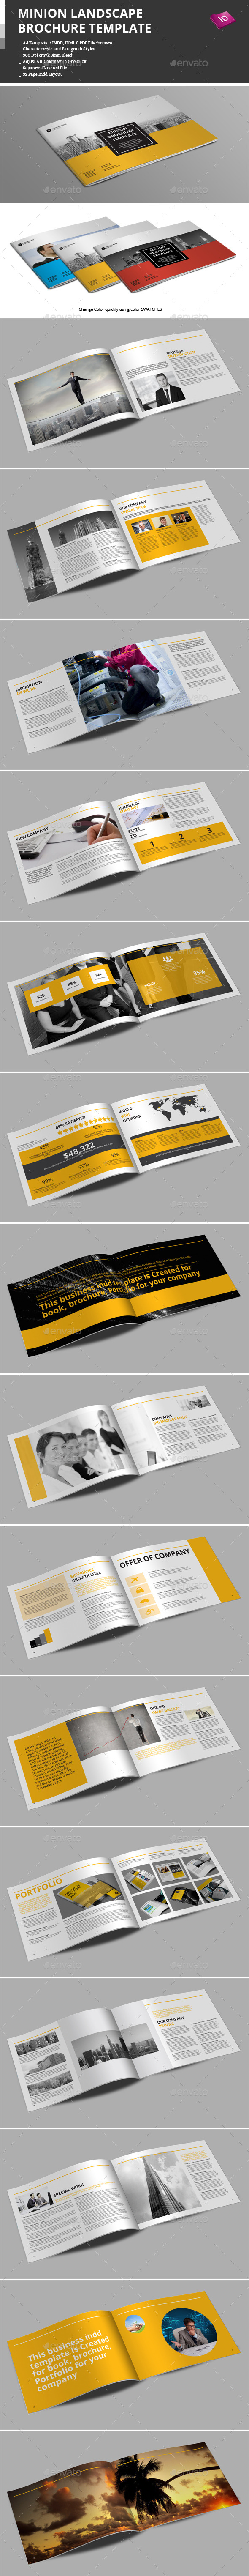 GraphicRiver Minion Landscape Brochure Templates 9097938